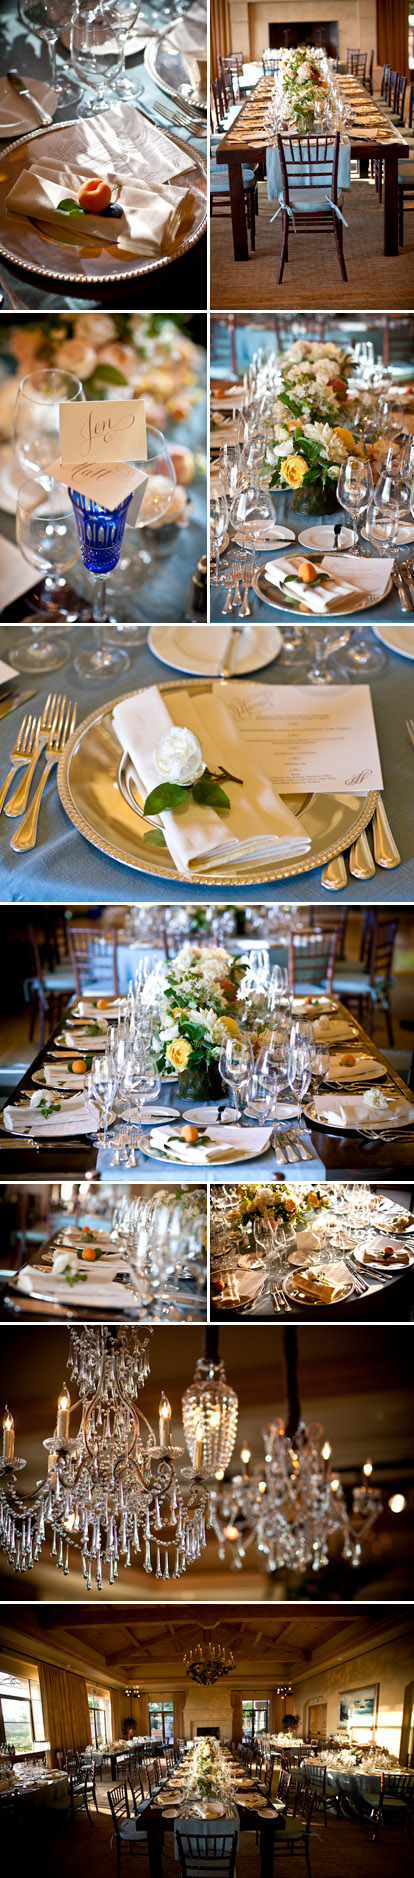 Teal, peach and metallic rose gold vrustic vintage wedding table tops, real wedding decor at The Resort at Pelican Hill, images by Jay Lawrence Goldman